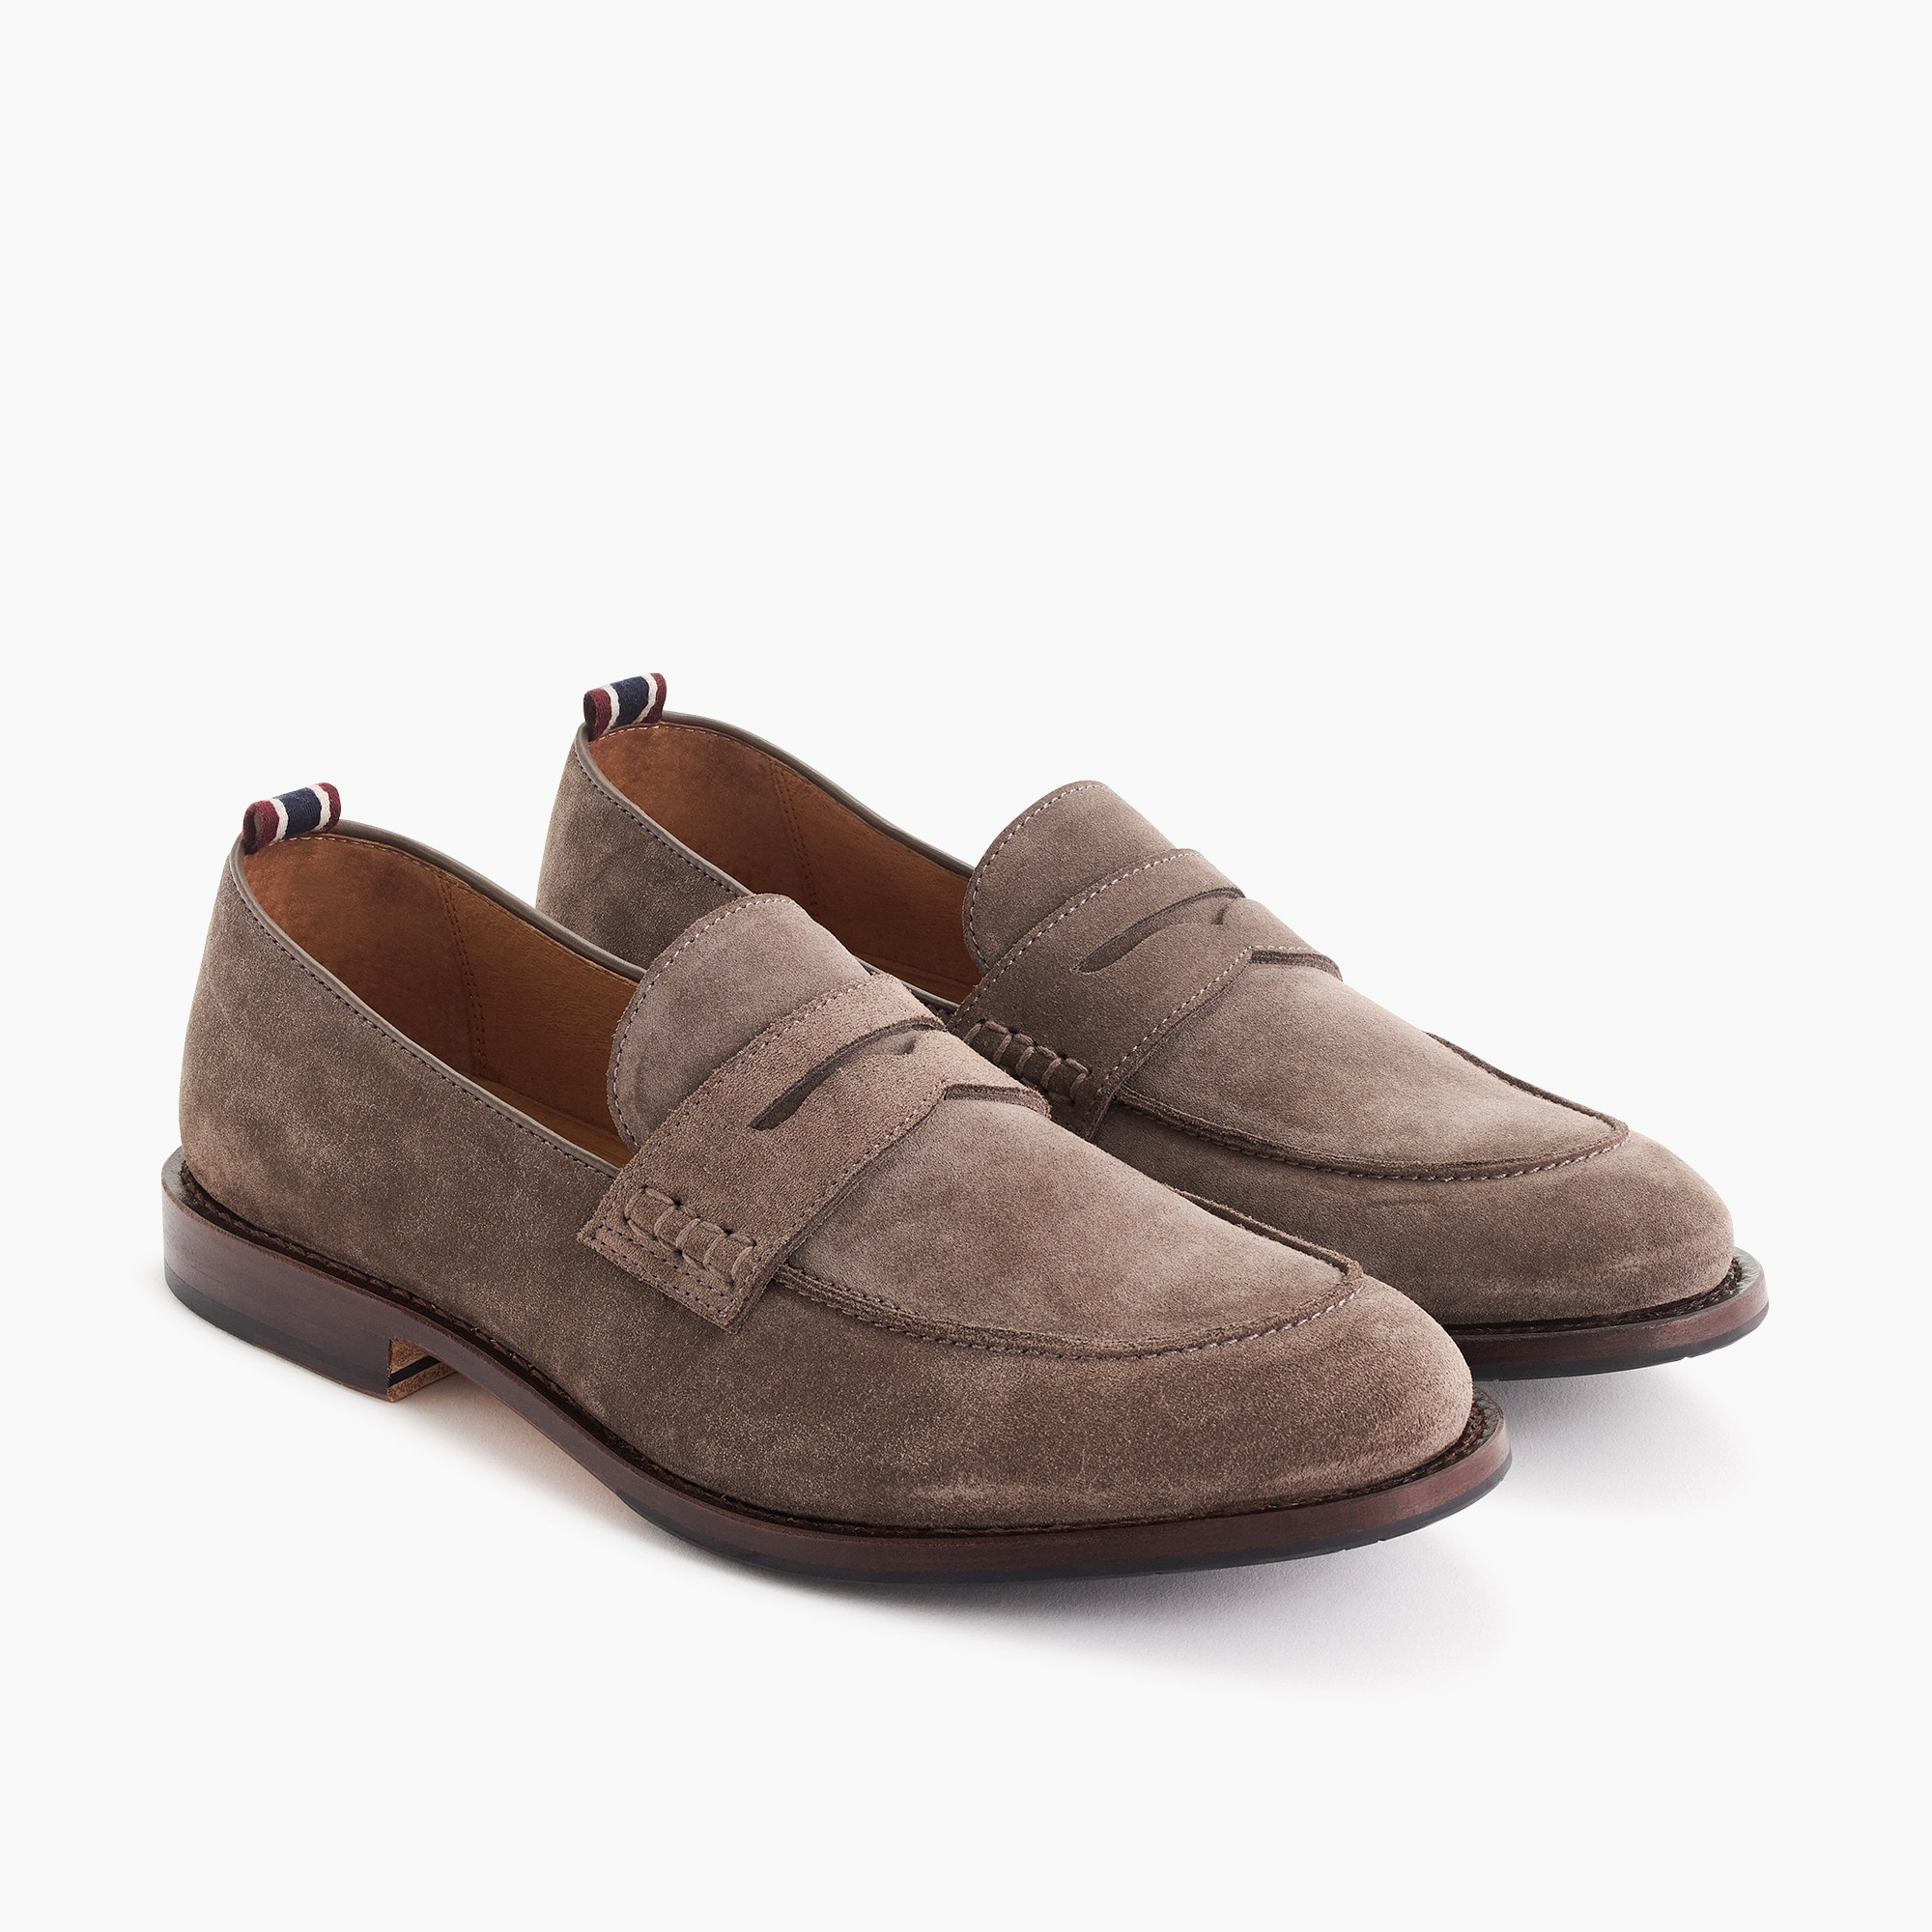 mens Oar Stripe penny loafers in Italian suede